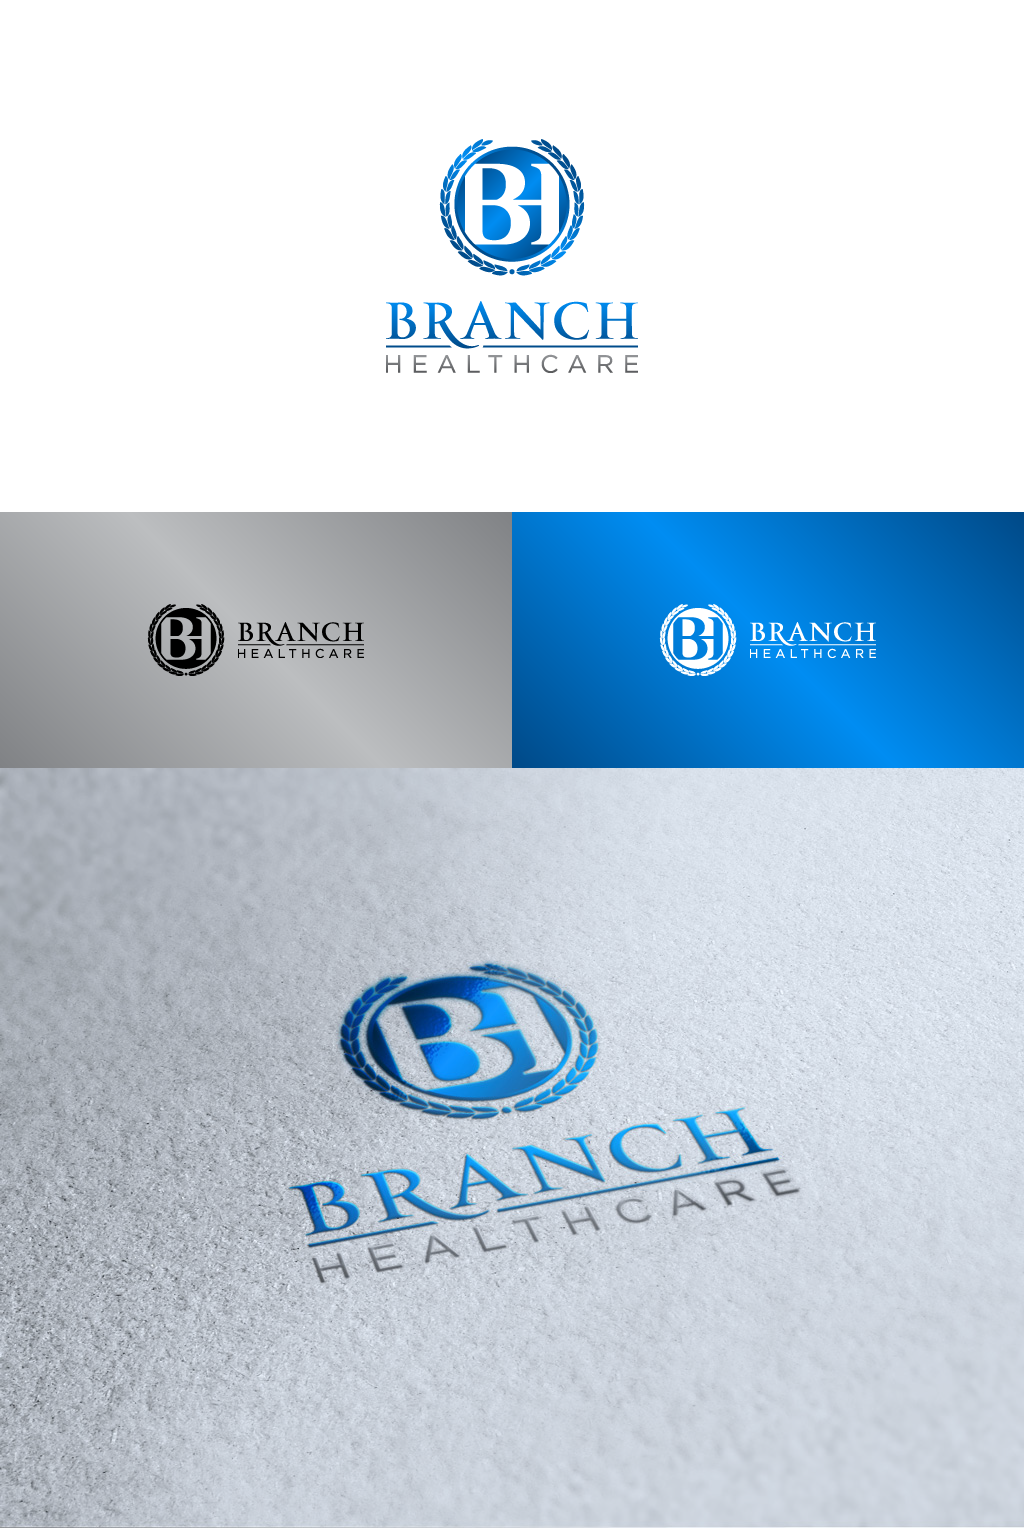 Create the next logo for Branch Healthcare